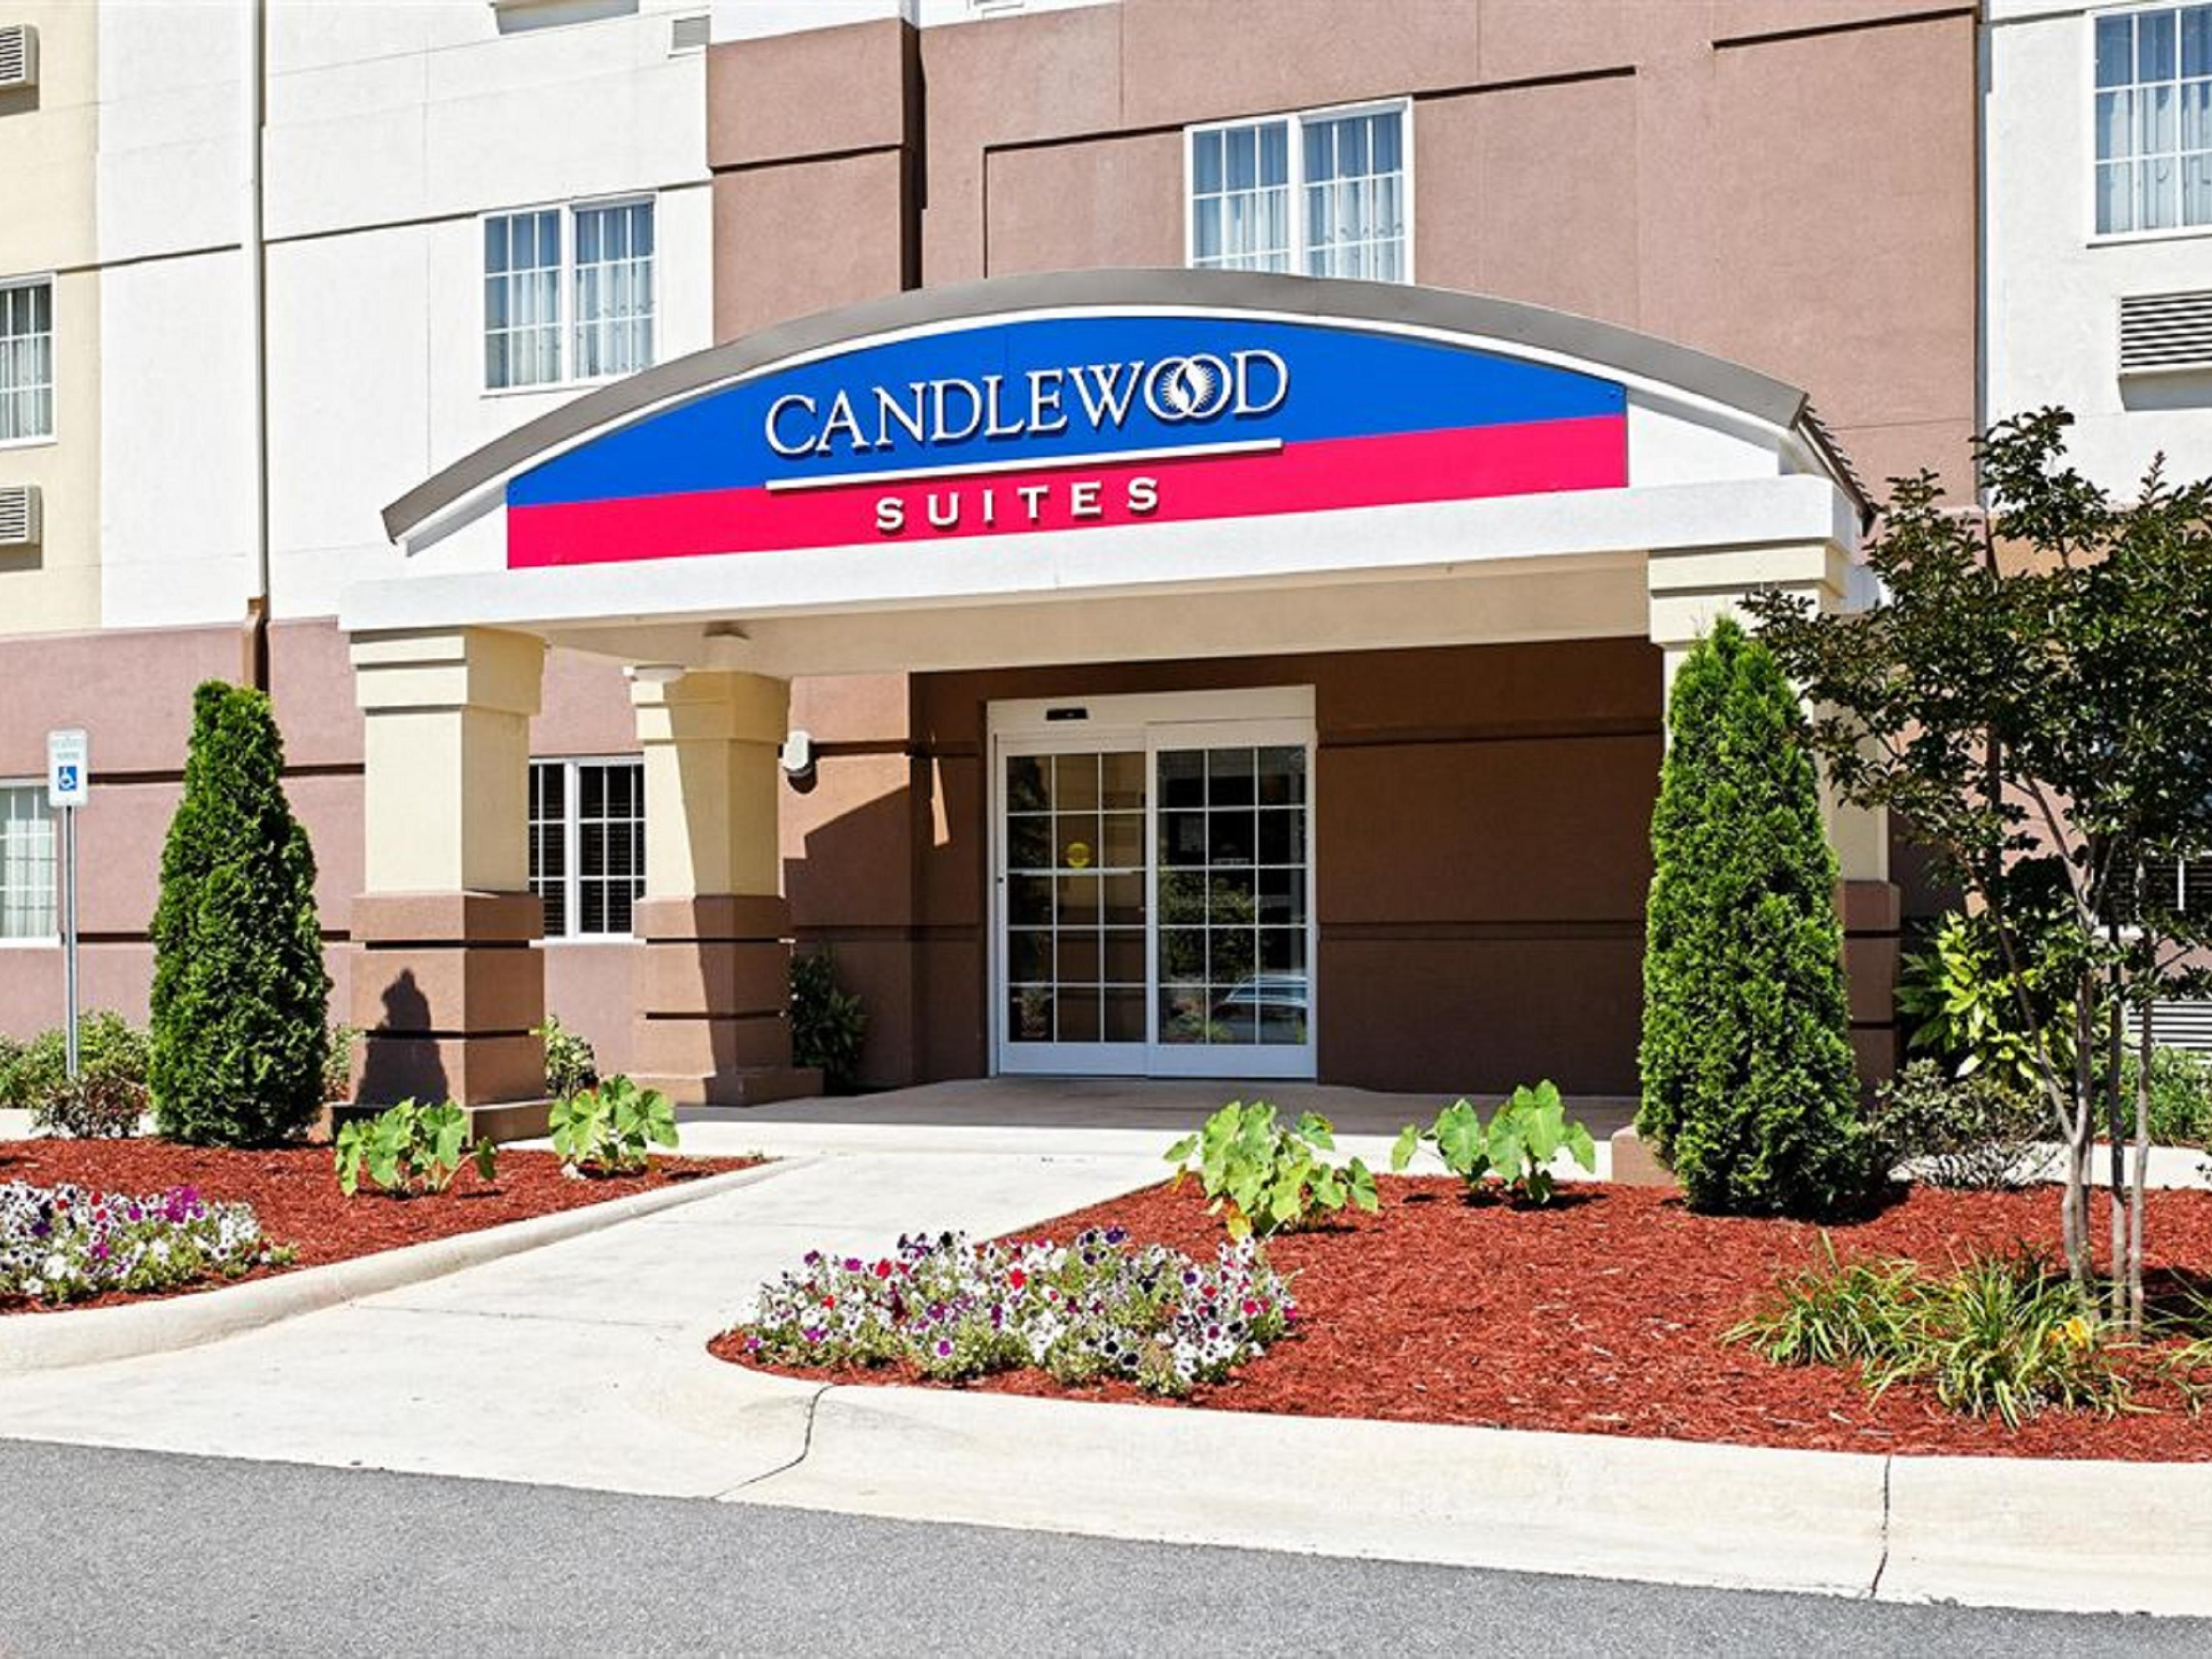 Tuscaloosa Hotels Candlewood Suites Extended Stay Hotel In Alabama